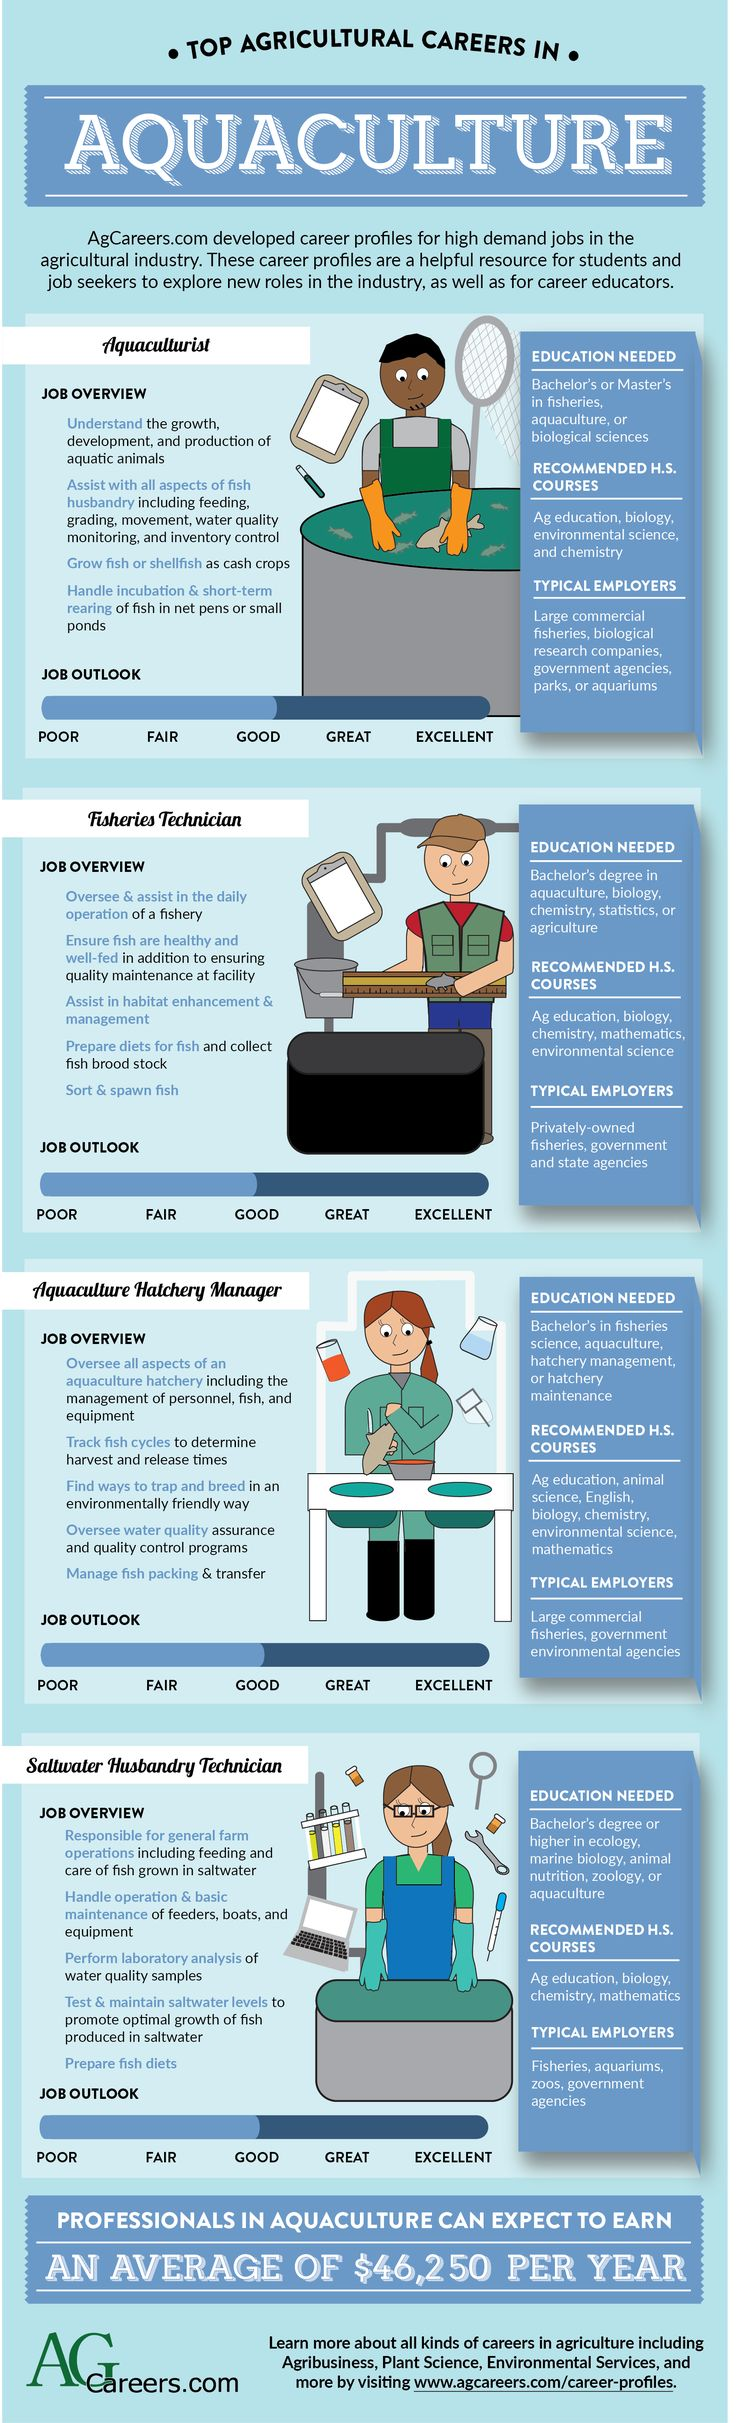 52 Best Ag Supports Jobs Images On Pinterest | Ag Jobs, Agriculture And  Agriculture Business